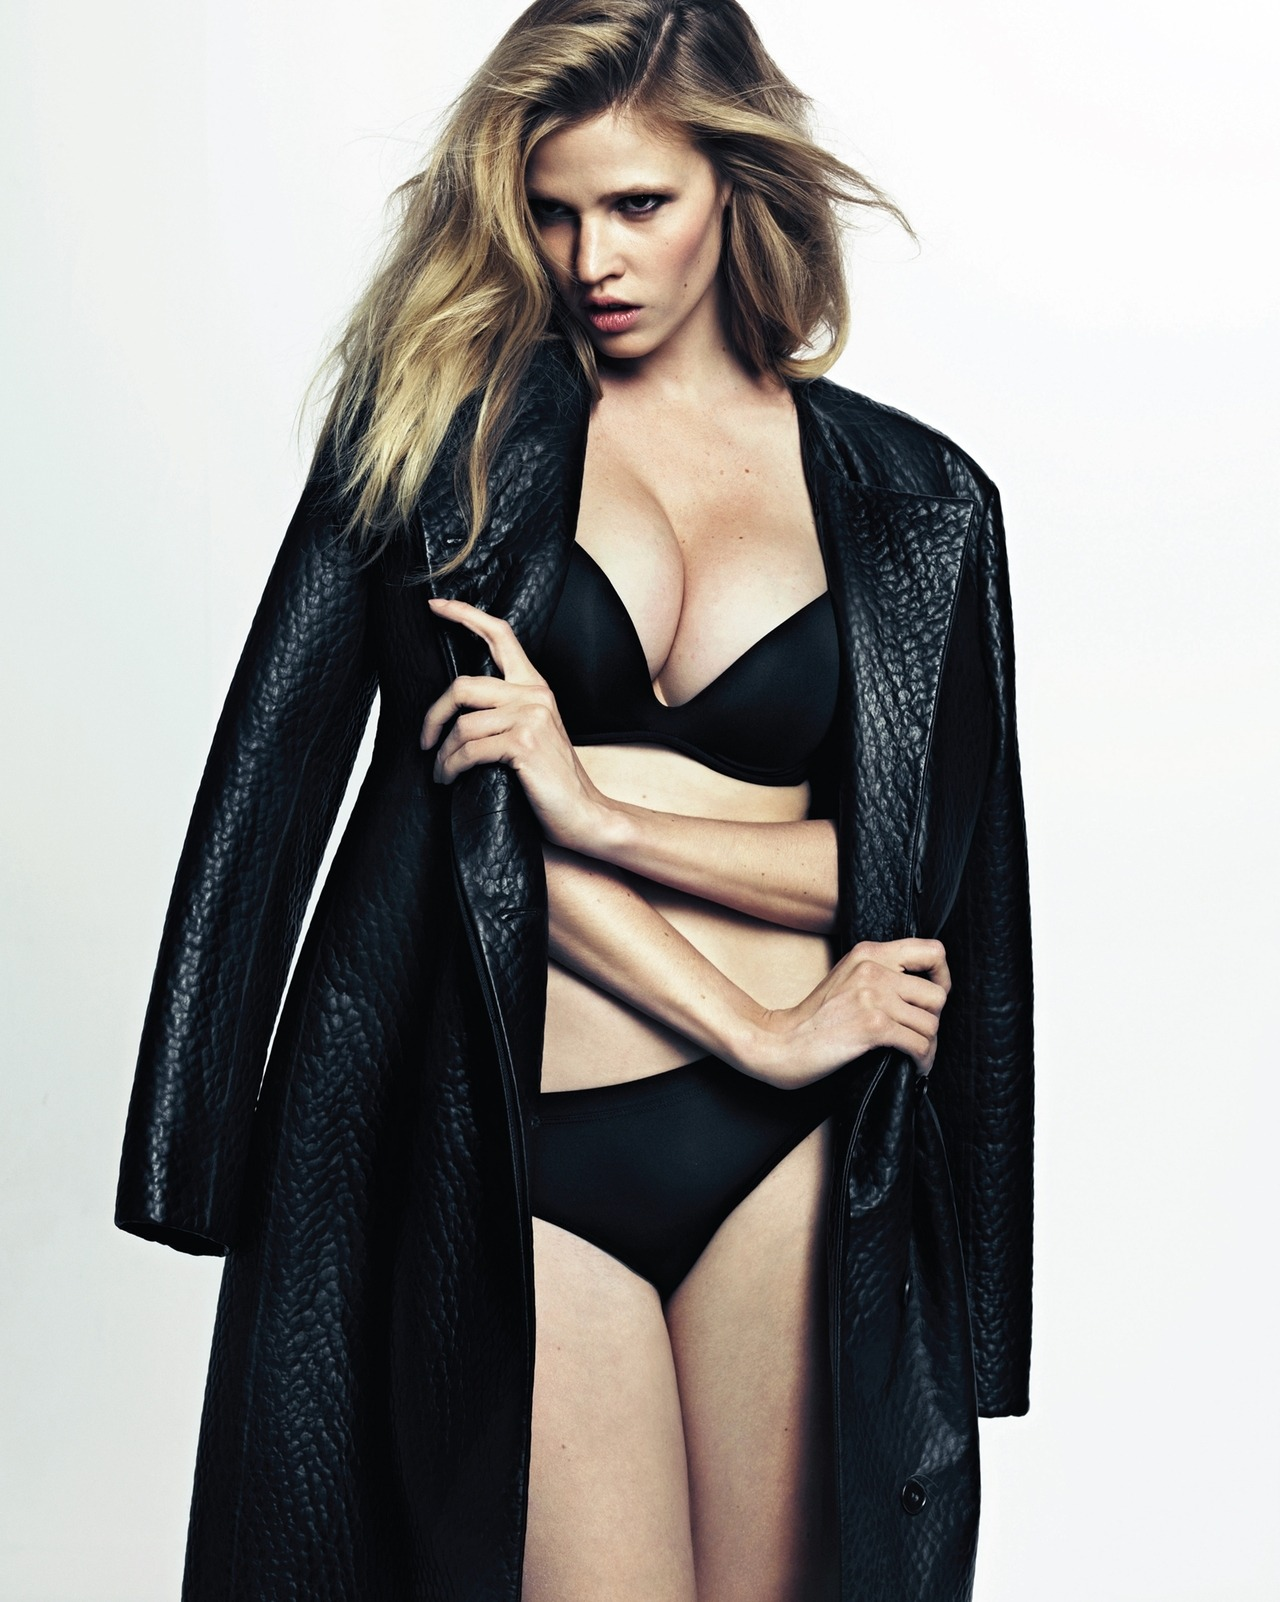 pussylequeer:  Lara Stone: Lara's Moment - Vogue Korea by Hong Jang Hyun, August 2012